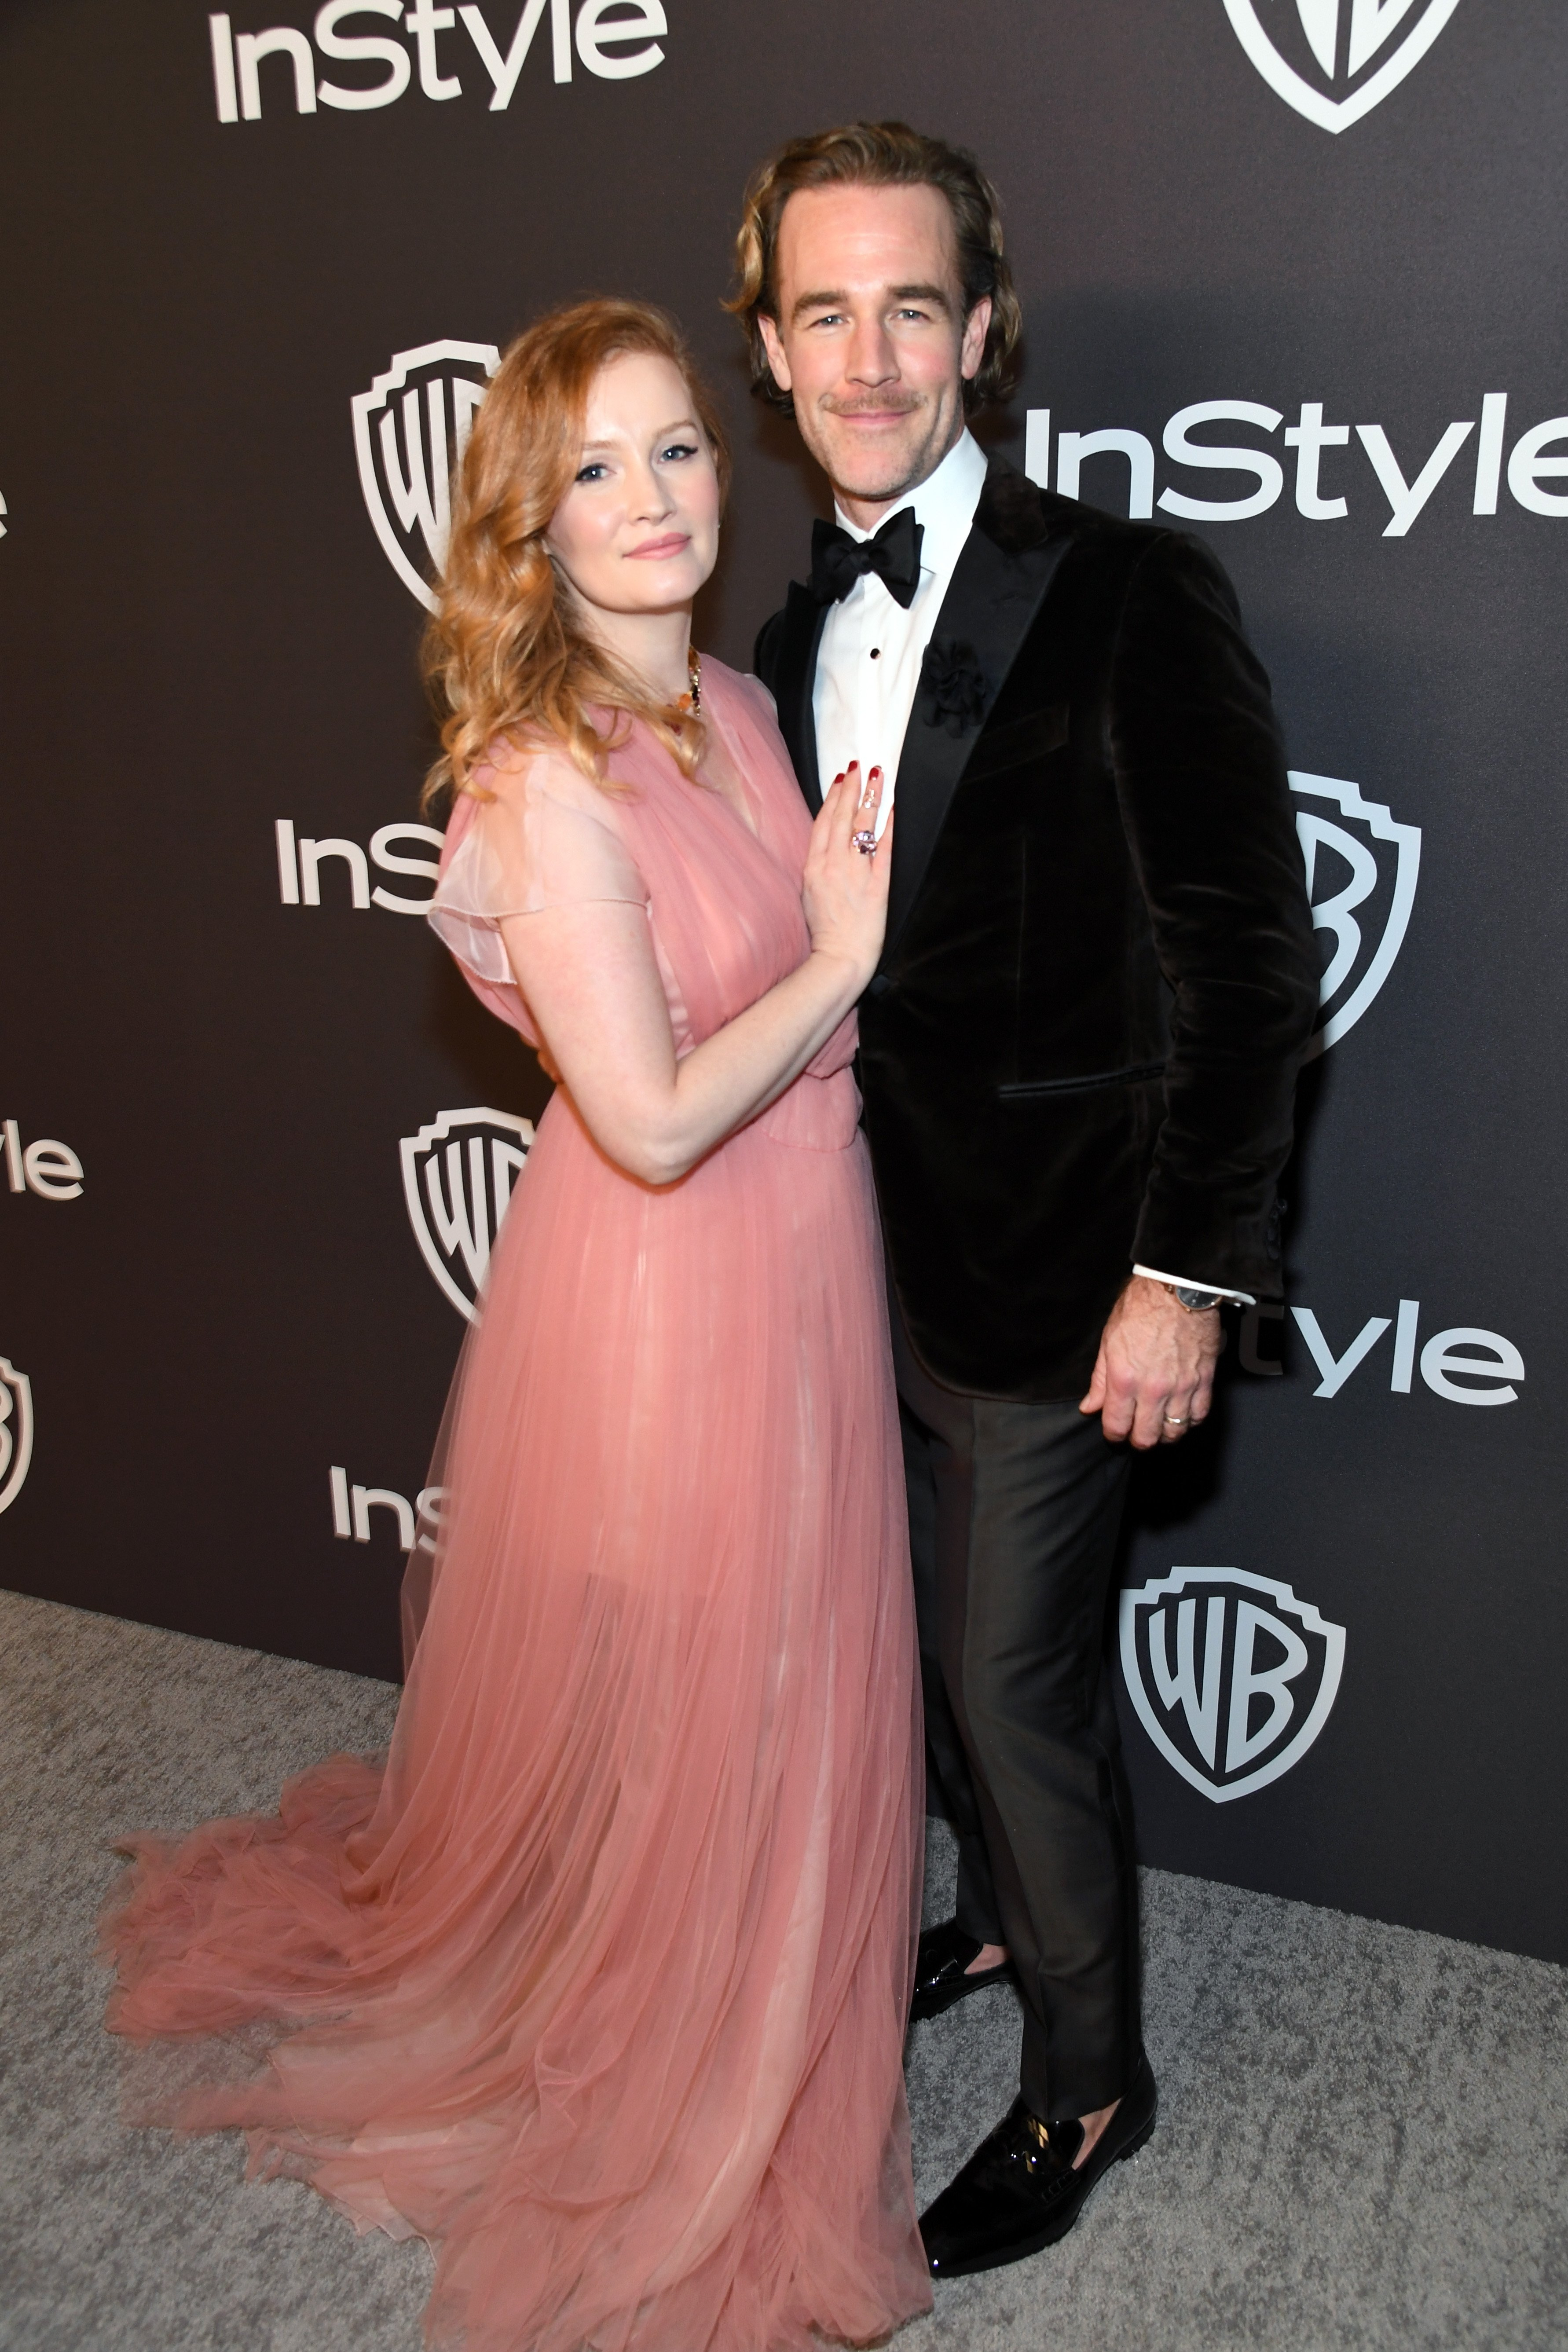 Kimberly Van Der Beek and James Van Der Beek attend the 2019 InStyle and Warner Bros. 76th Annual Golden Globe Awards at The Beverly Hilton Hotel on January 6, 2019 in Beverly Hills, California | Photo: Getty Images